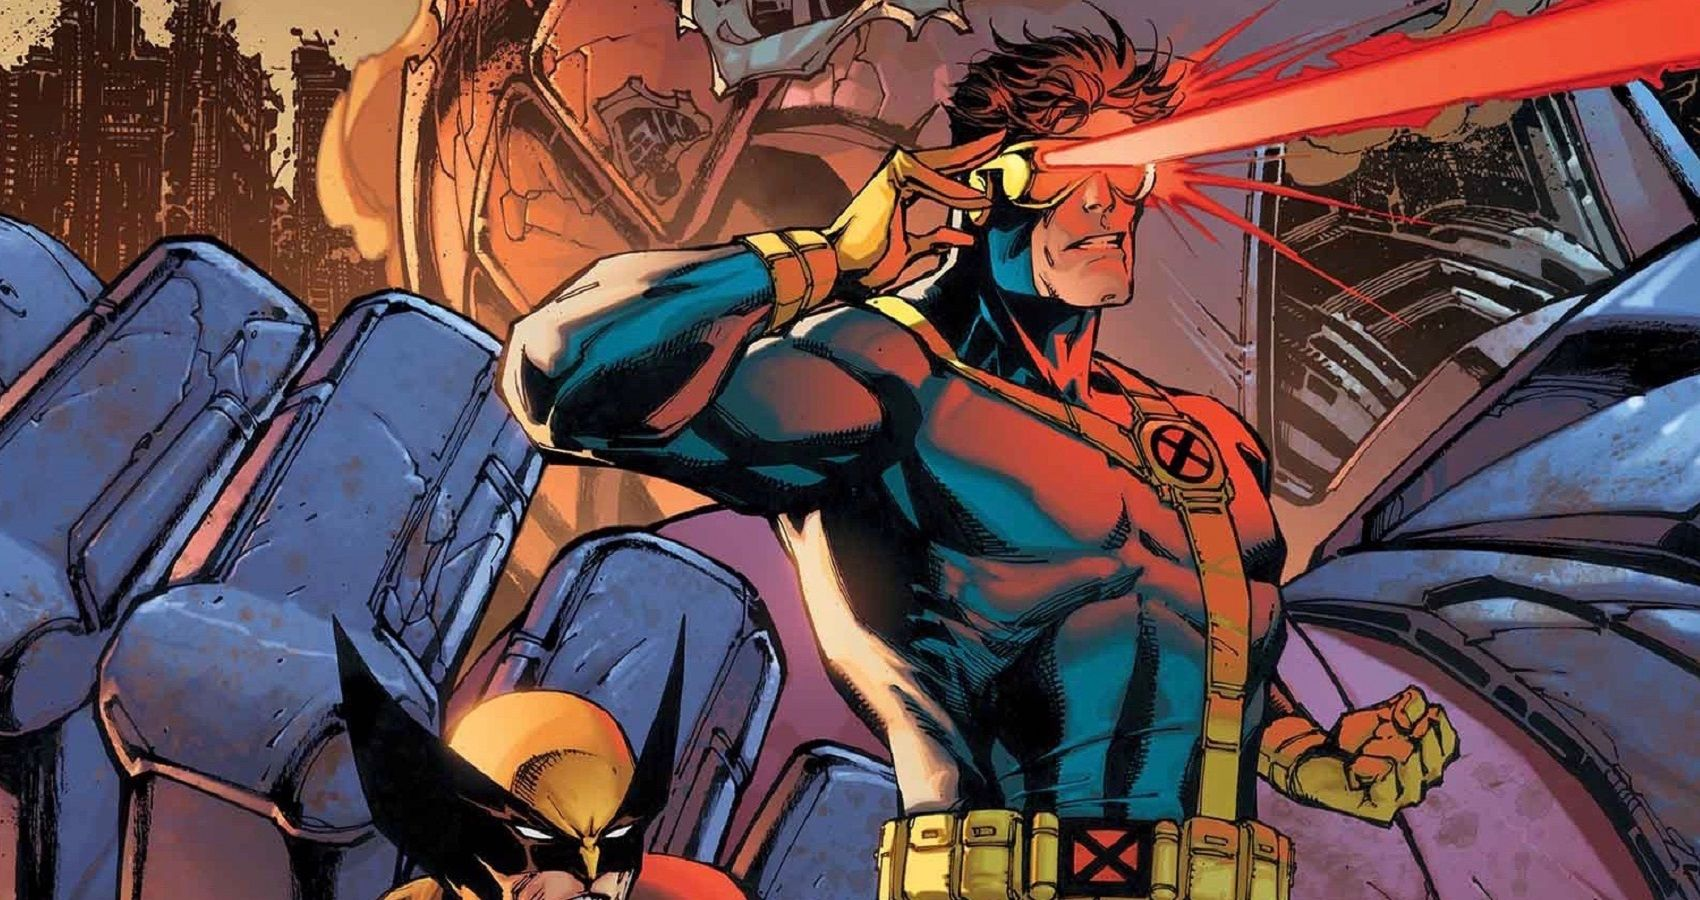 Cyclops Using Optic Blasts